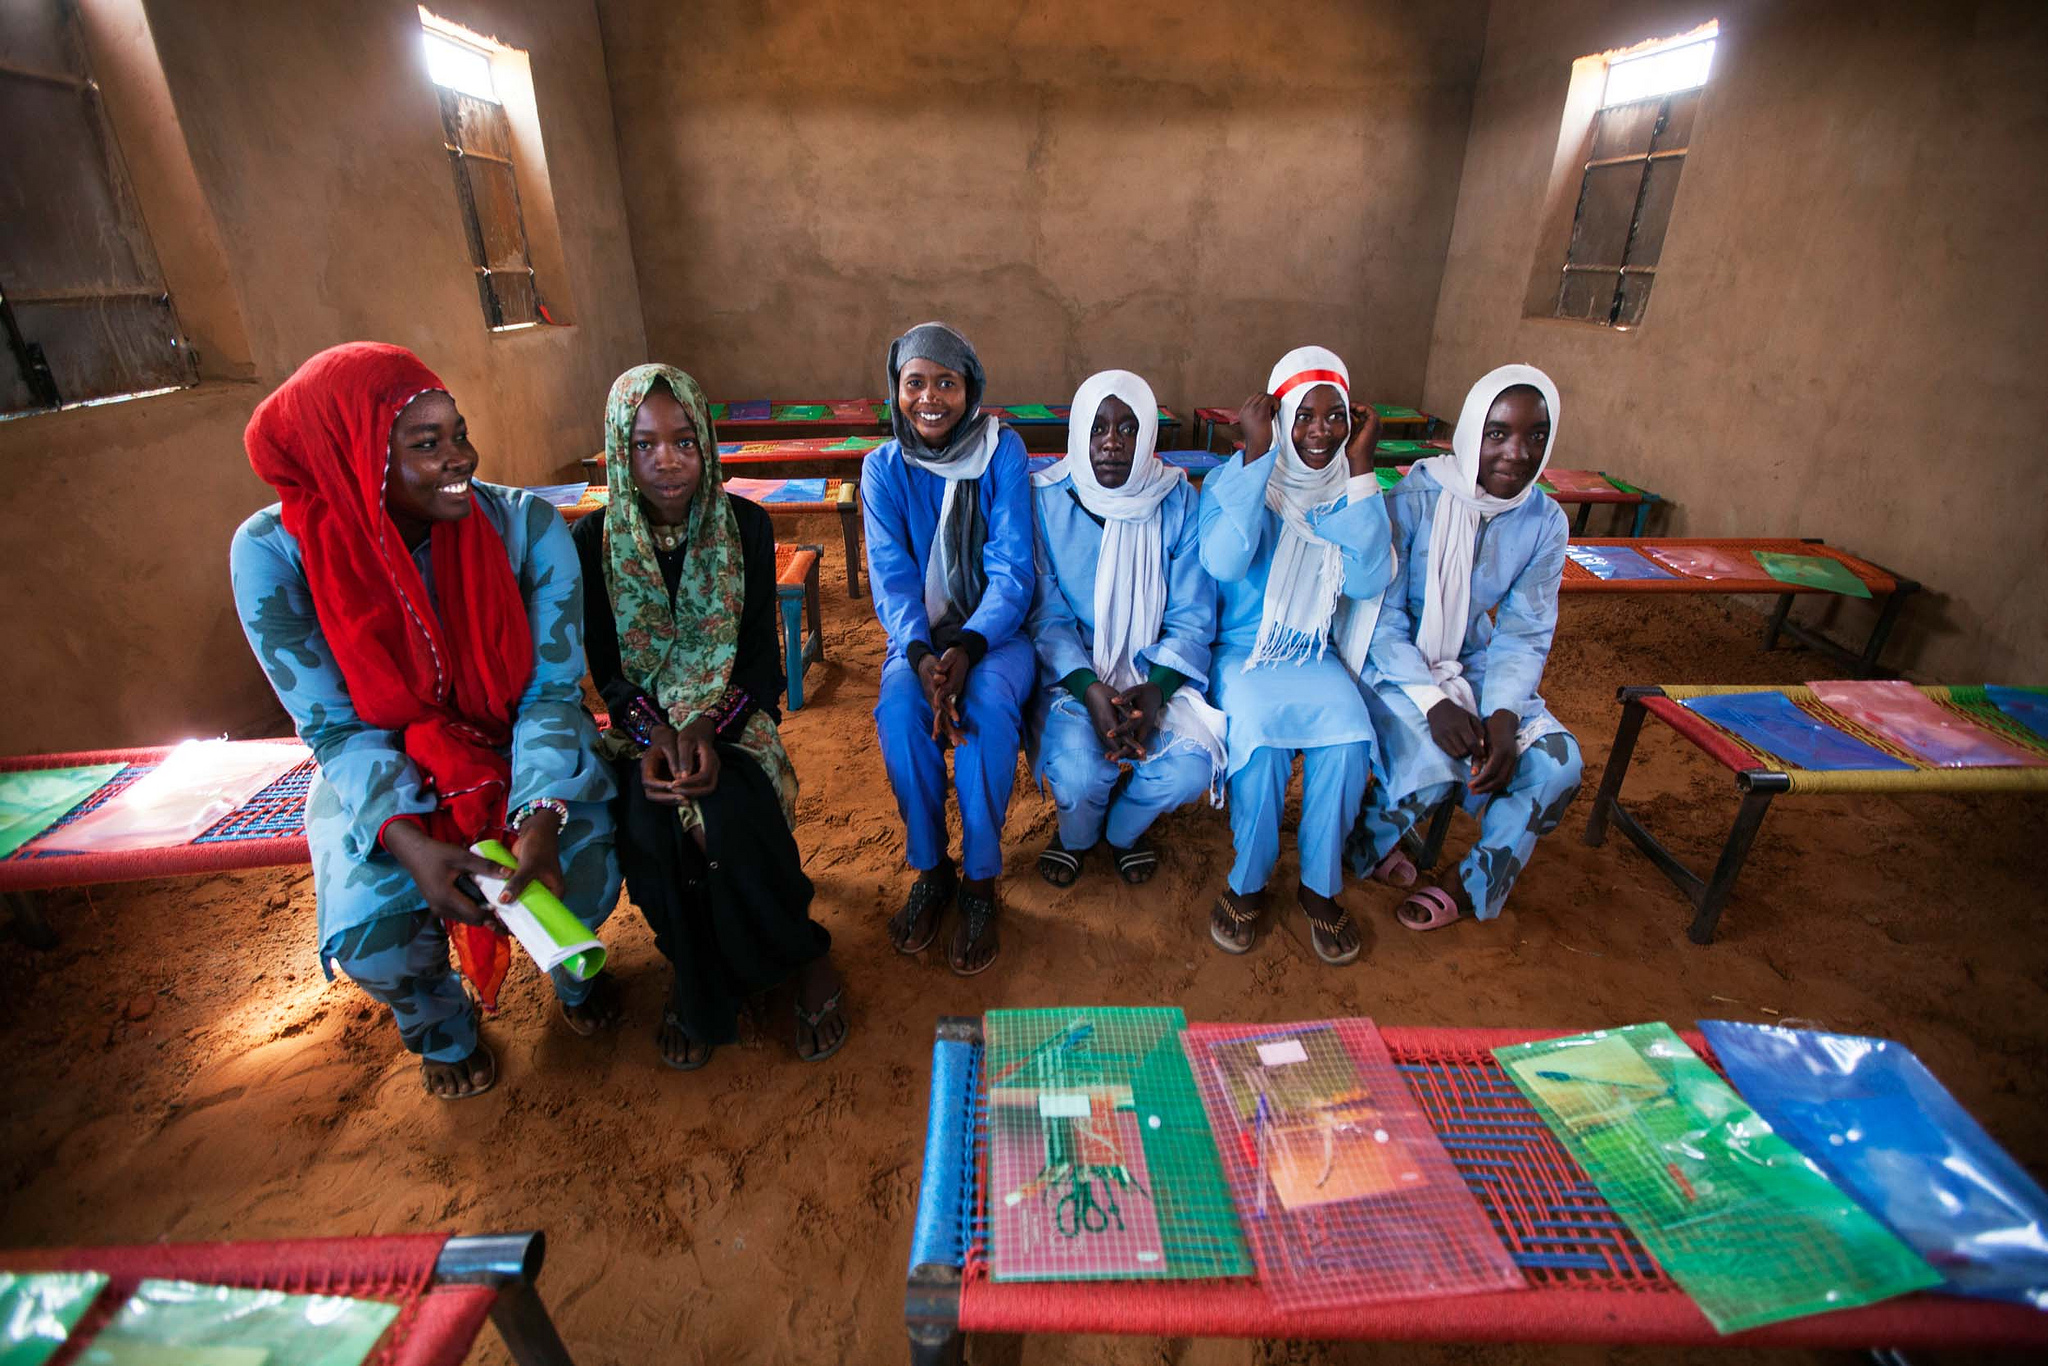 School opening in Zam Zam, North Darfur, Sudan, June 22, 2014 | © Courtesy of Albert González Farran/UNAMID/Flickr.